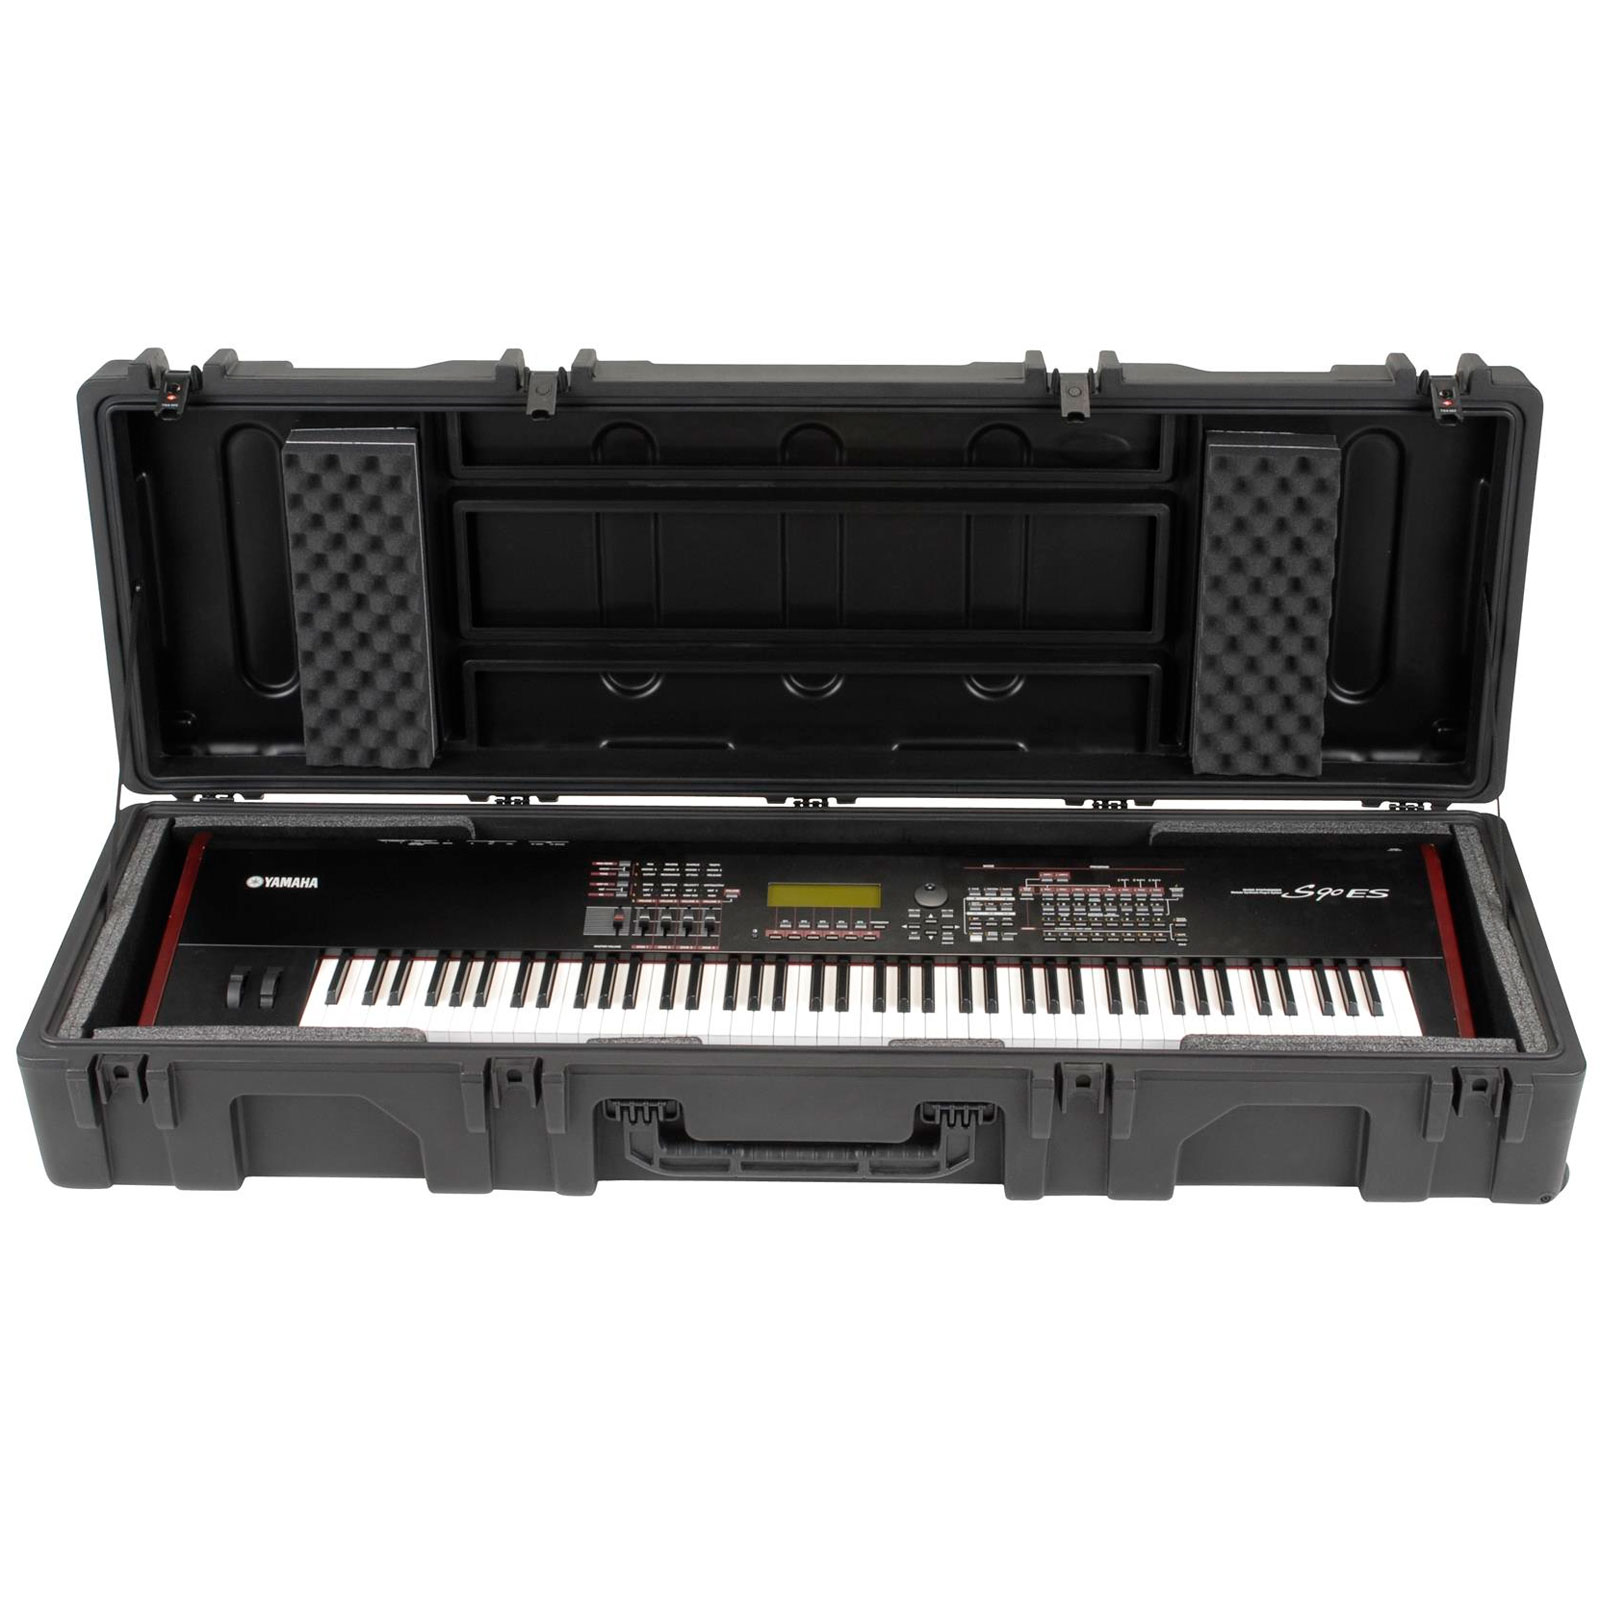 skb 88 note narrow keyboard case with wheels for yamaha cp1 5 1r6218wy. Black Bedroom Furniture Sets. Home Design Ideas